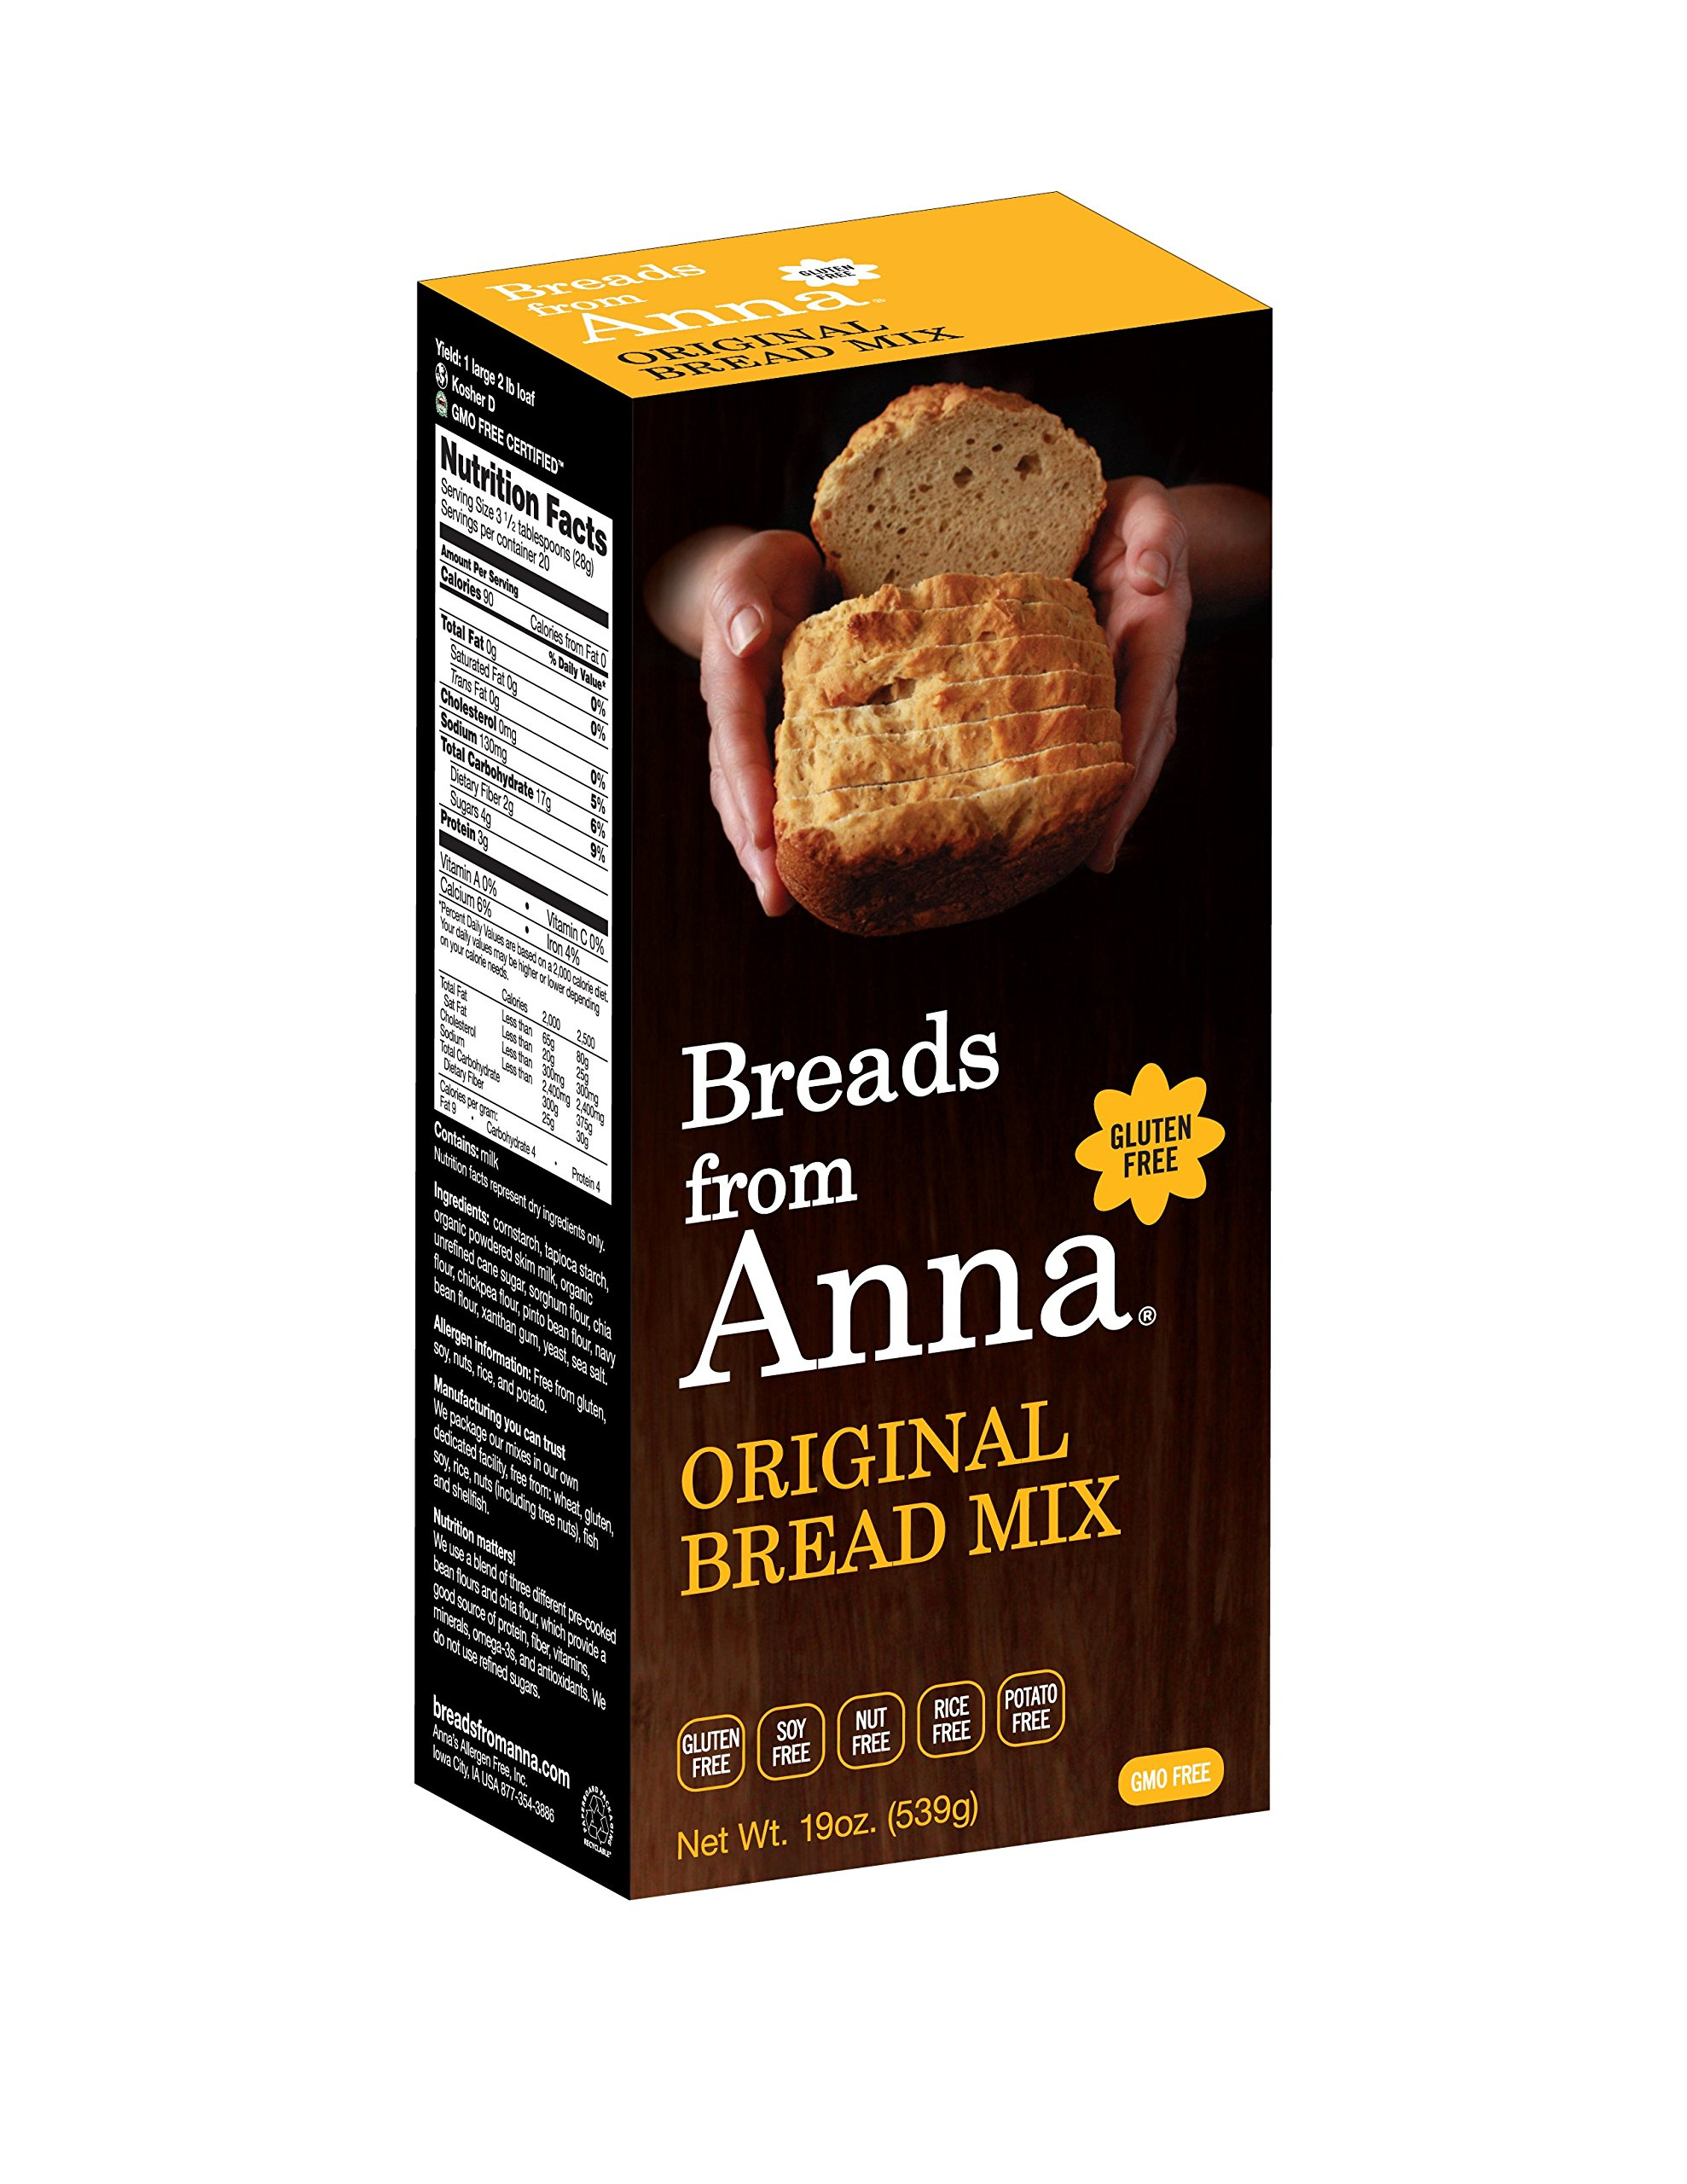 Breads from Anna Bulk 25lbs-Breads from Anna Original Bread Mix Gluten-free, Soy free, Rice Free, Nut Free, Potato Free